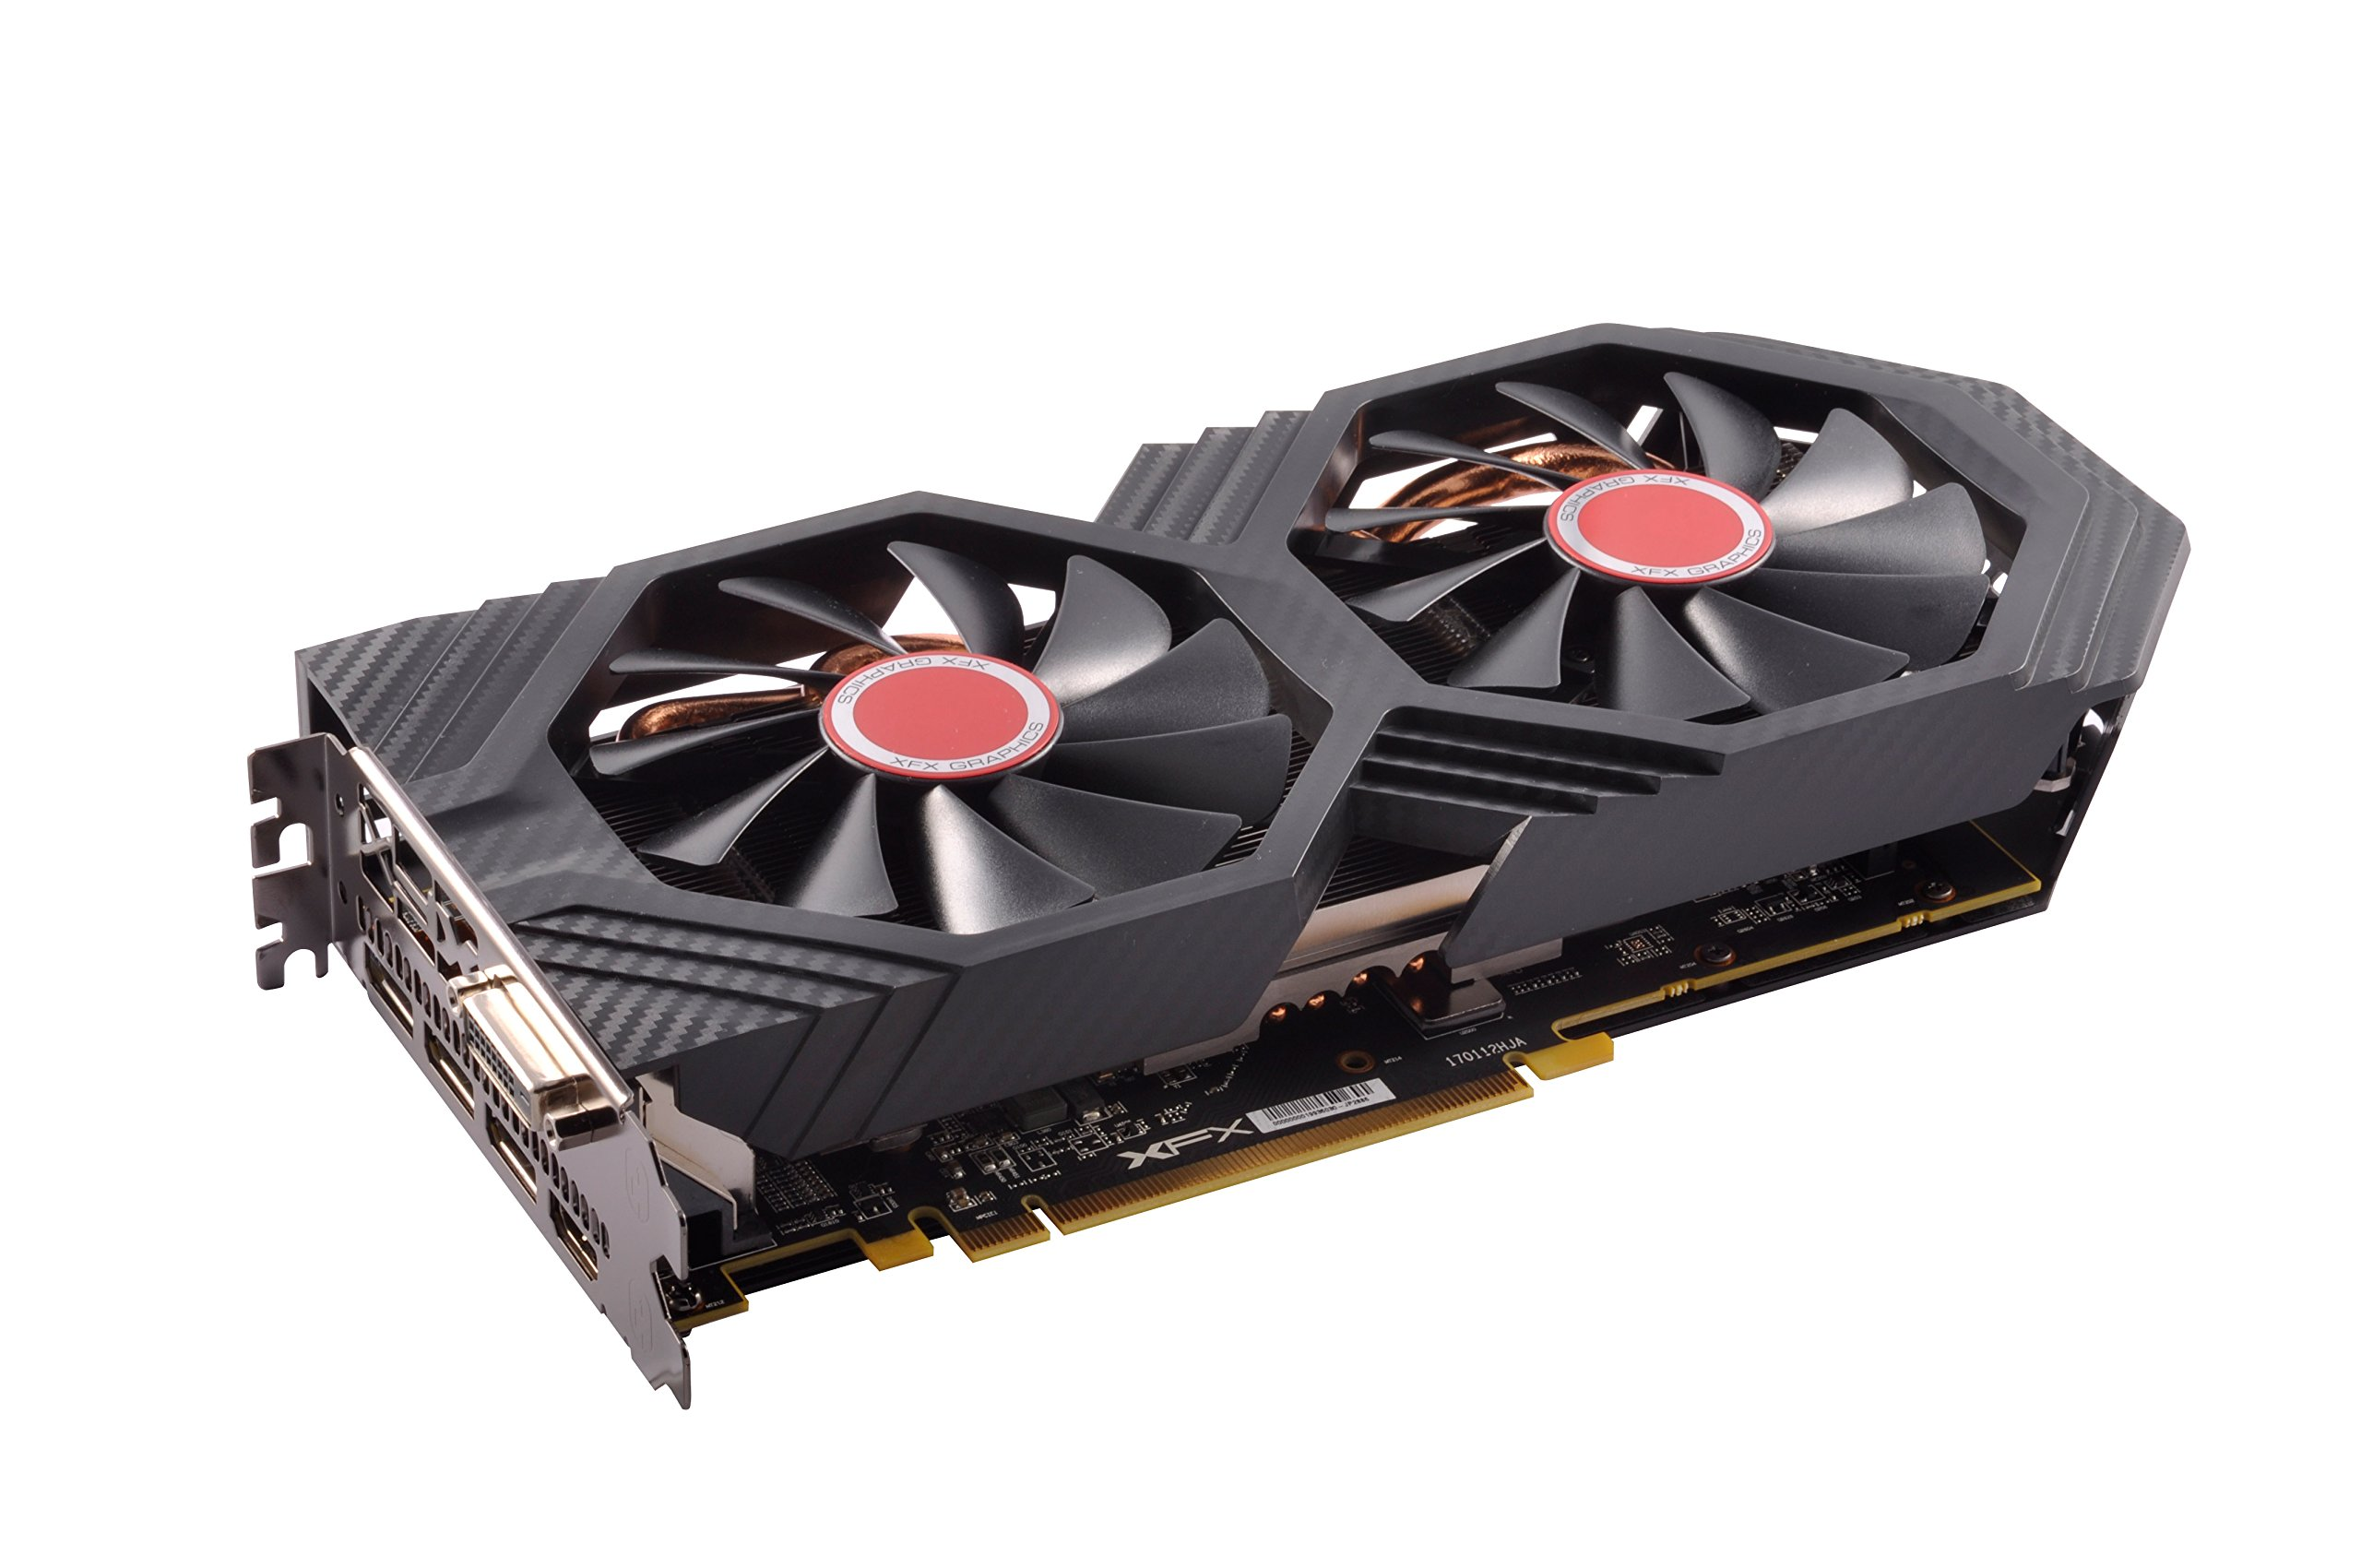 XFX GTS XXX Edition RX 580 8GB OC+ 1386Mhz DDR5 3xDP HDMI DVI Graphic Cards RX-580P8DFD6 by XFX